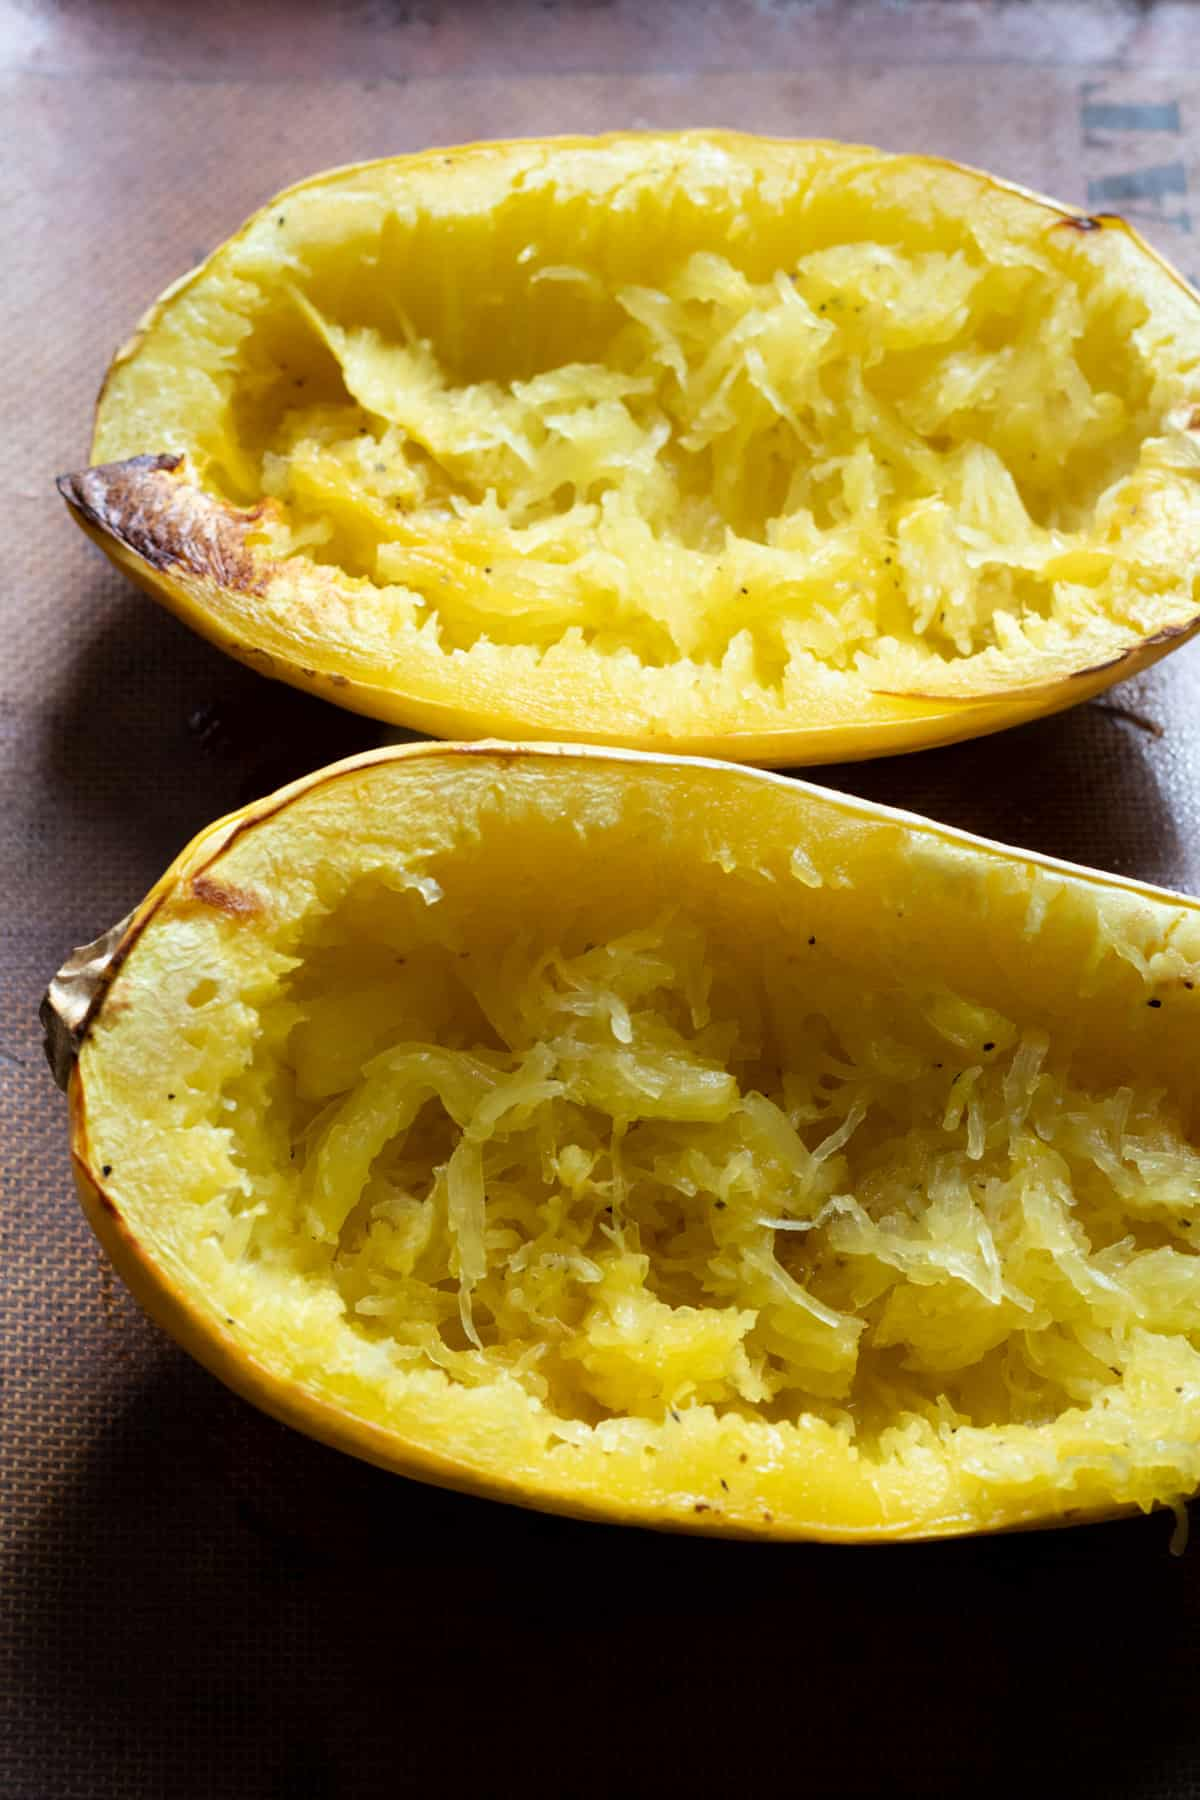 Spaghetti squash after baking with strands pulled.